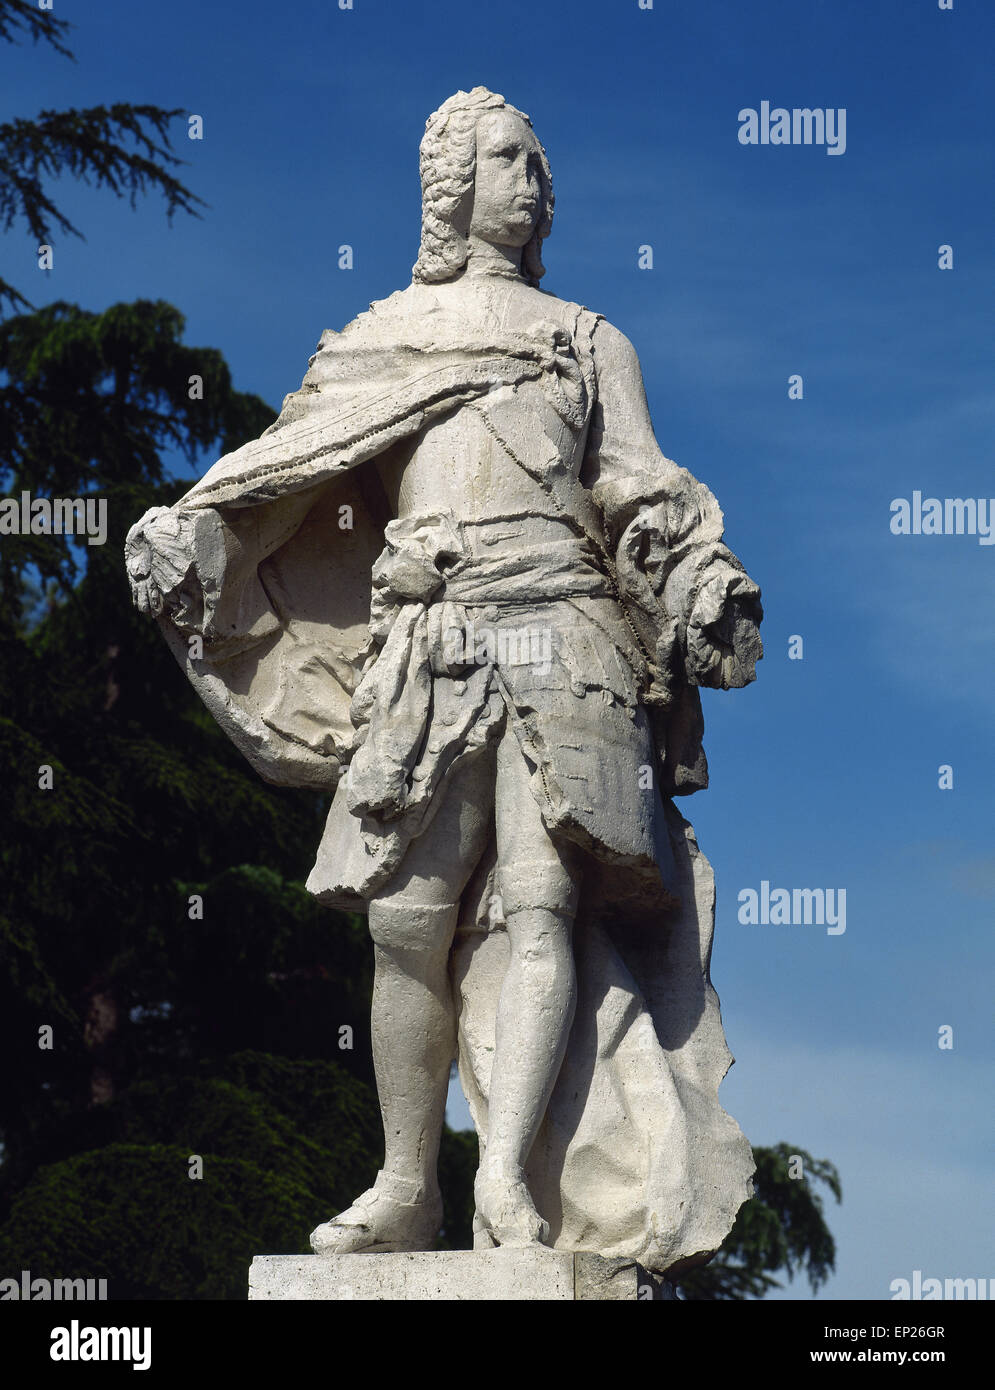 Ferdinand VI of Spain (1713-1759). The Learned. King of Spain. Bourbon dynasty. Statue of monarch. San Fernando - Stock Image